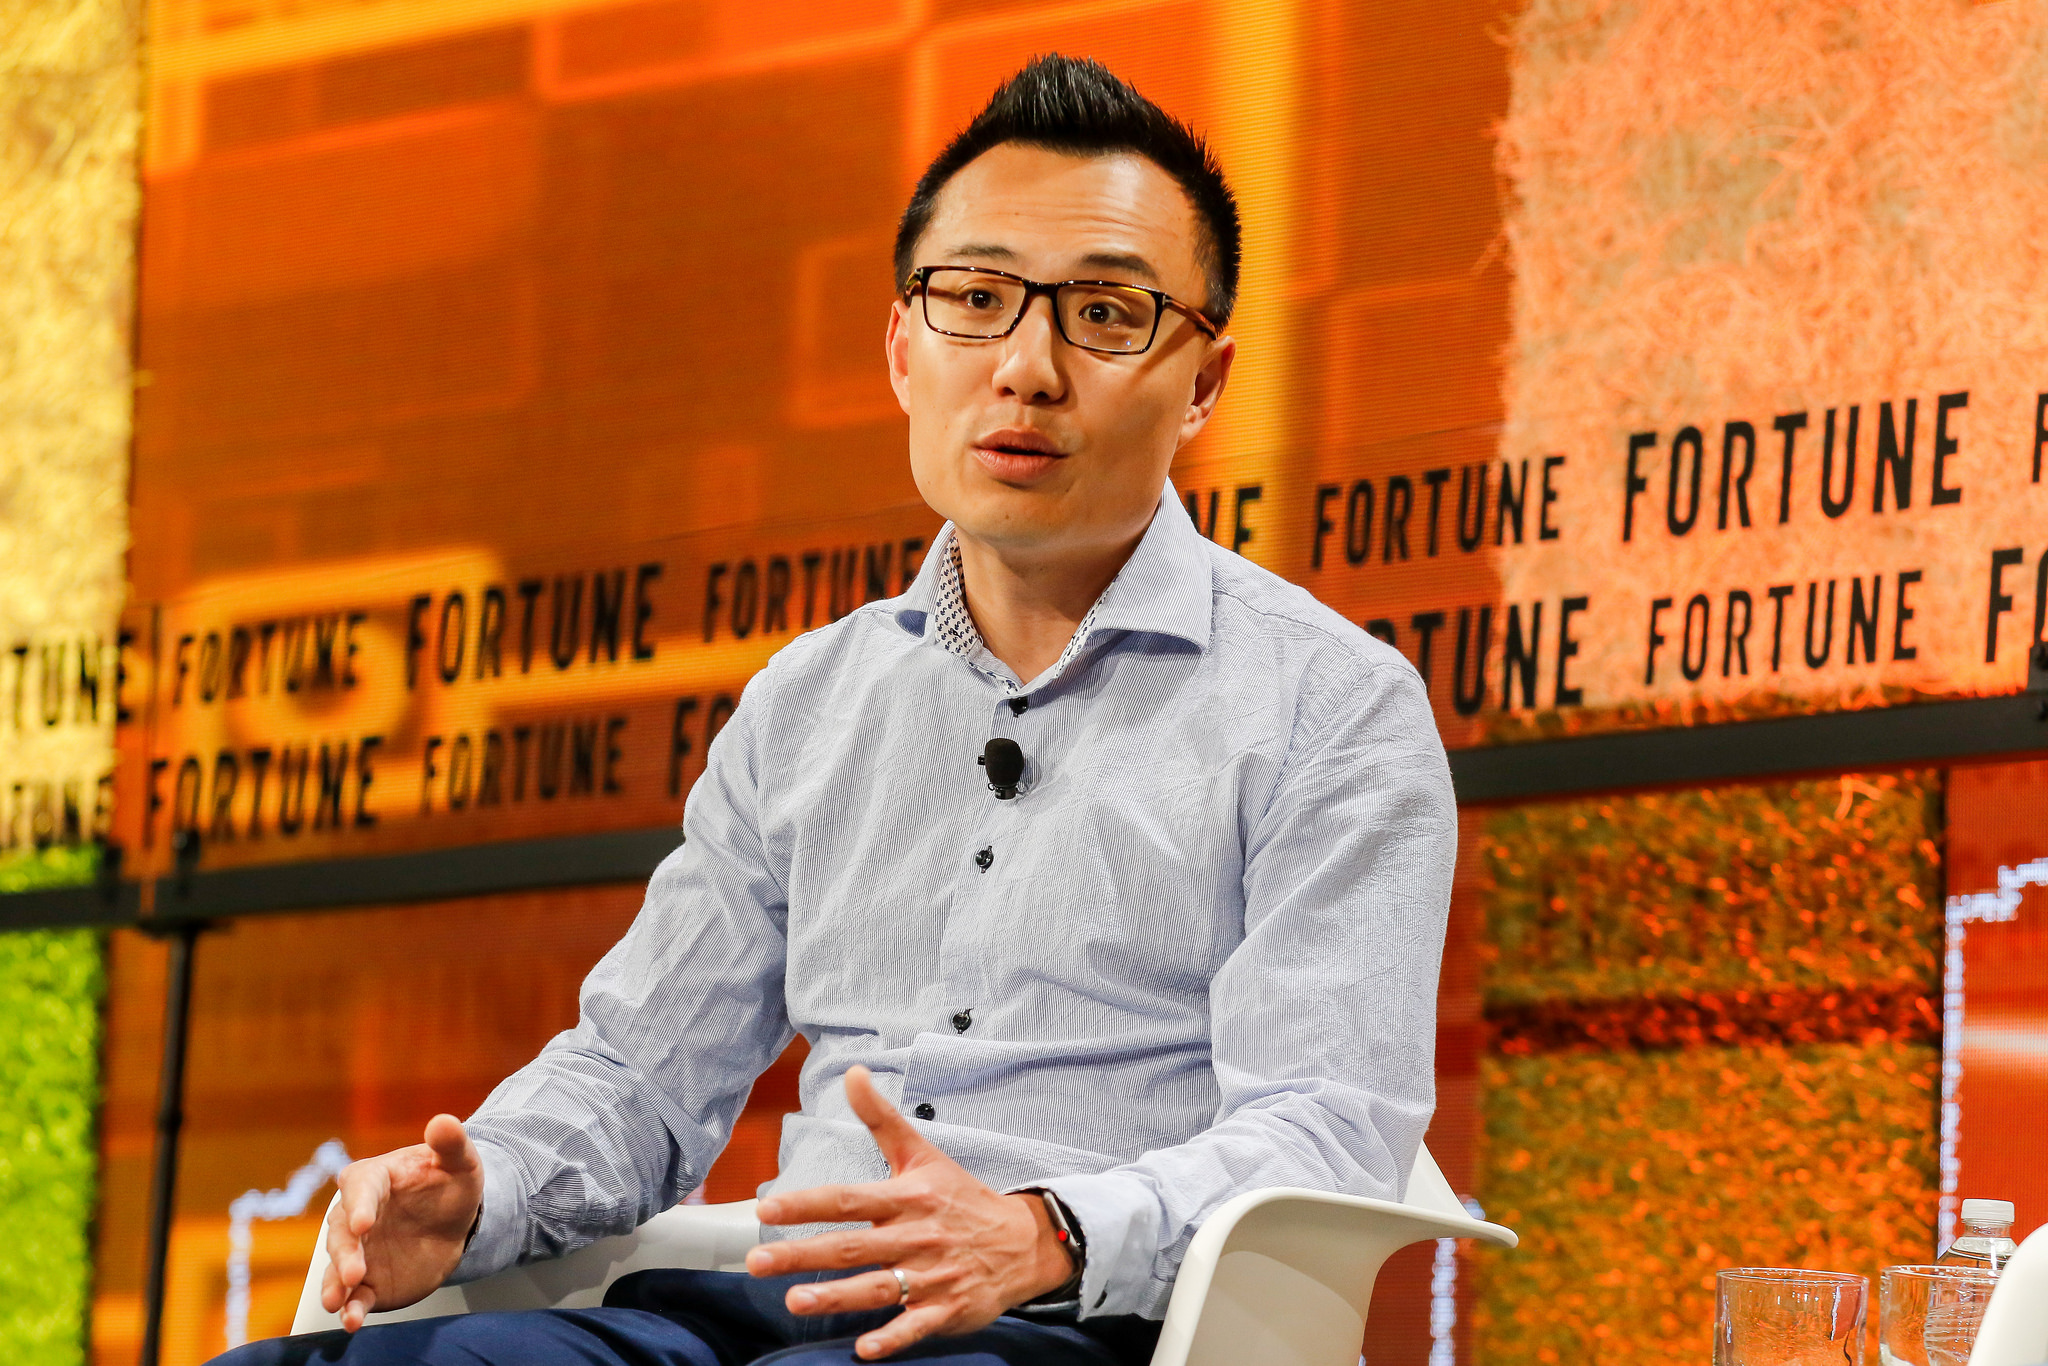 DoorDash CEO Tony Xu speaking at Fortune Brainstorm Tech 2018 in Aspen, Colo.